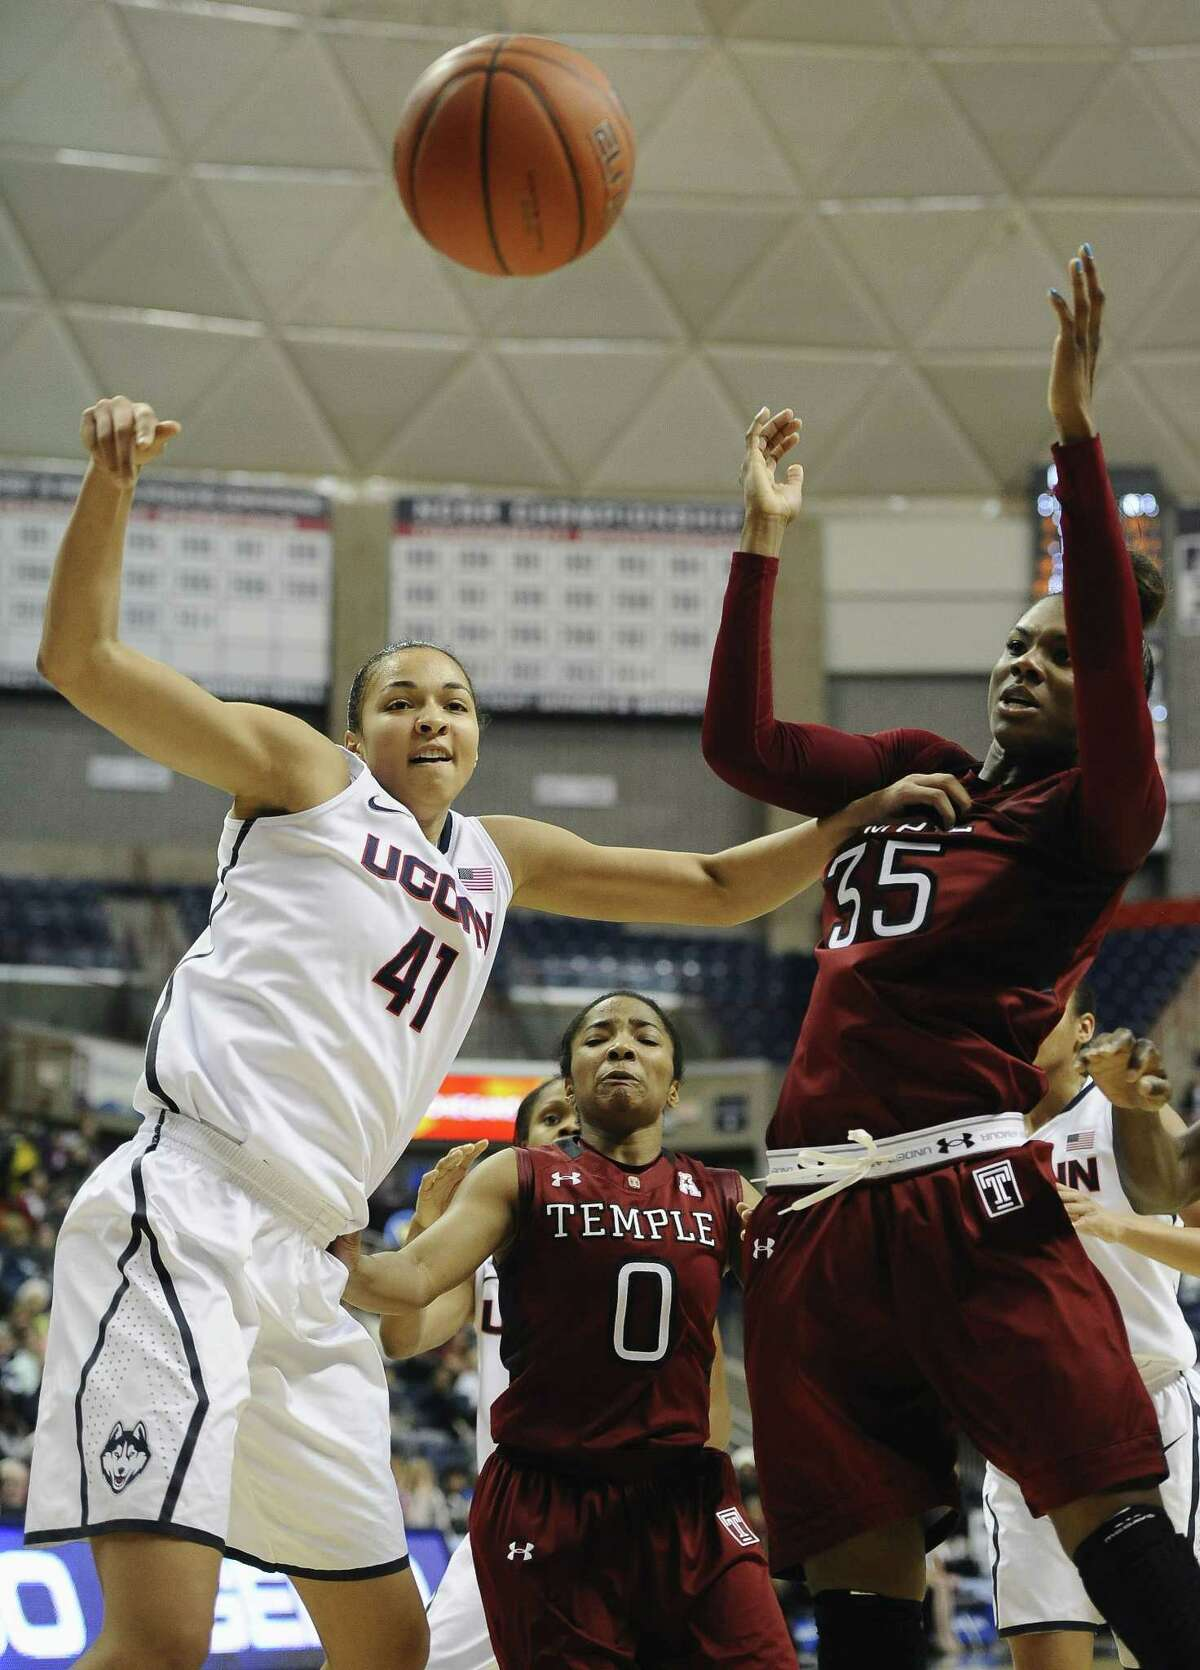 UConn's Kiah Stokes fights for a rebound against Temple's Alliya Butts (0) and Safiya Martin during the Huskies' 92-58 win on Wednesday in Storrs.